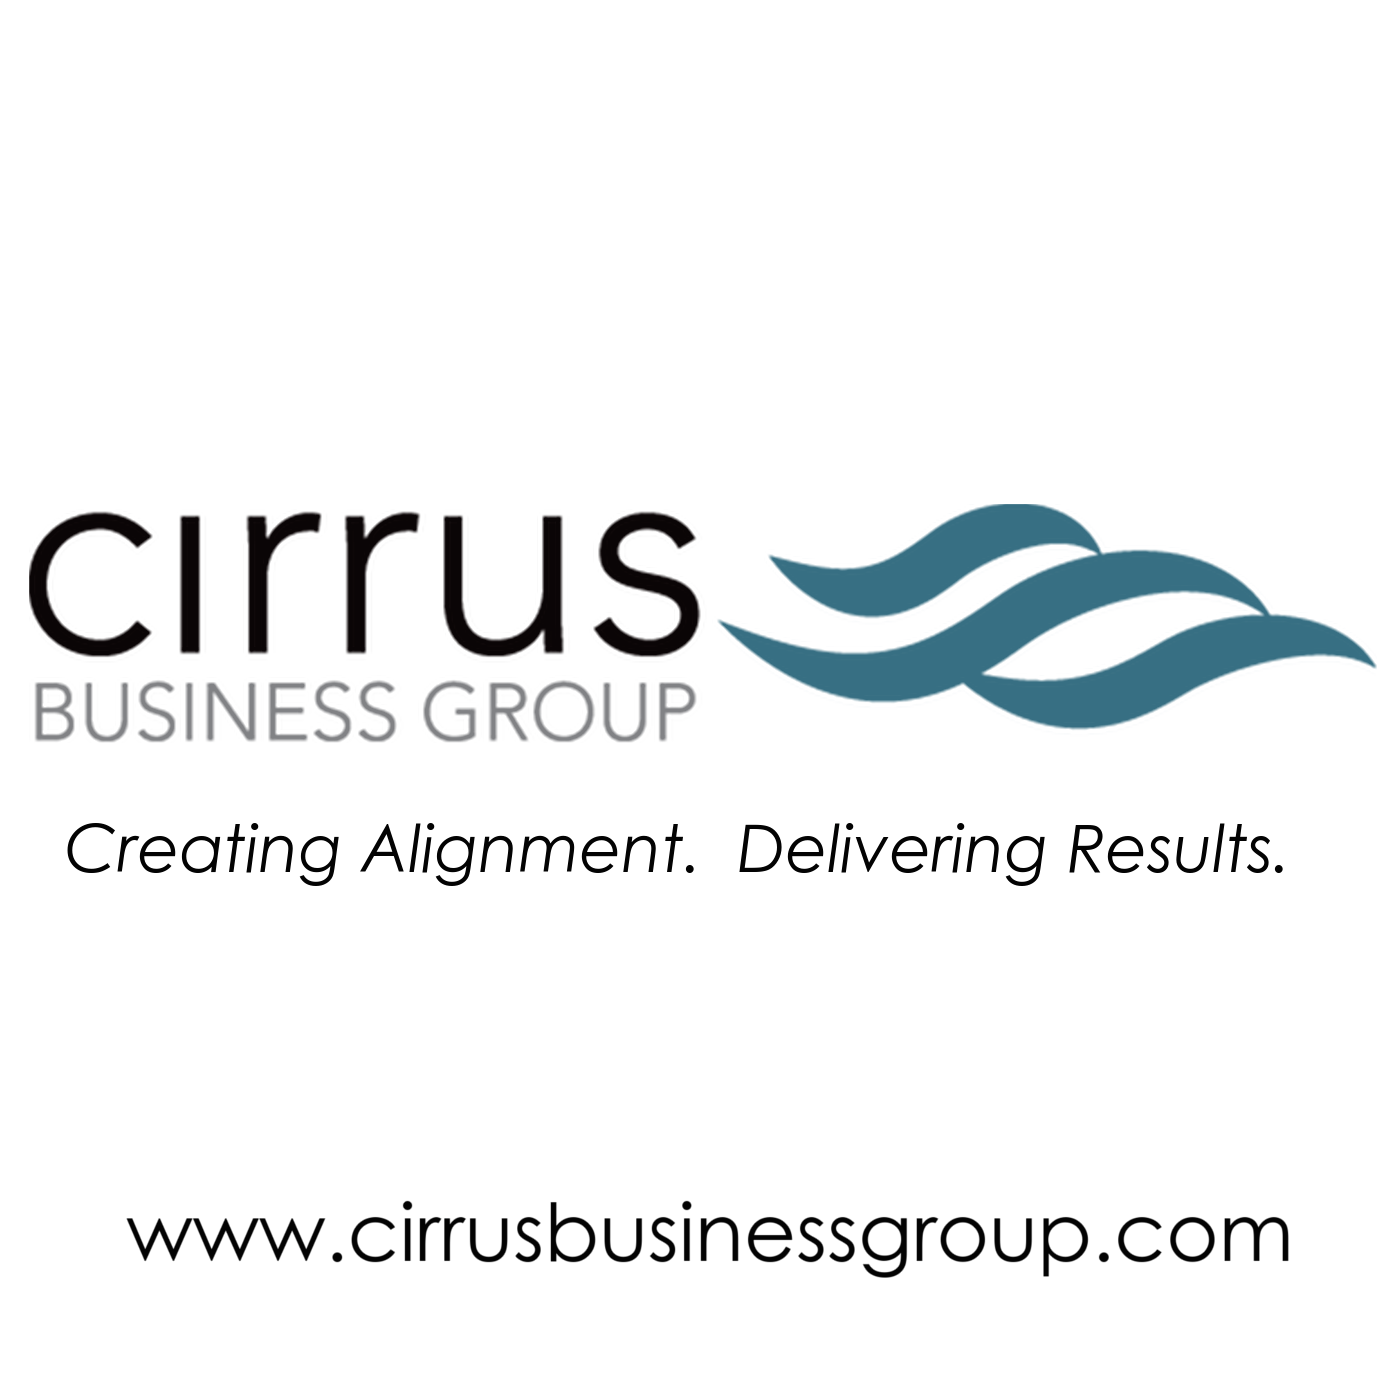 Cirrus Business Group